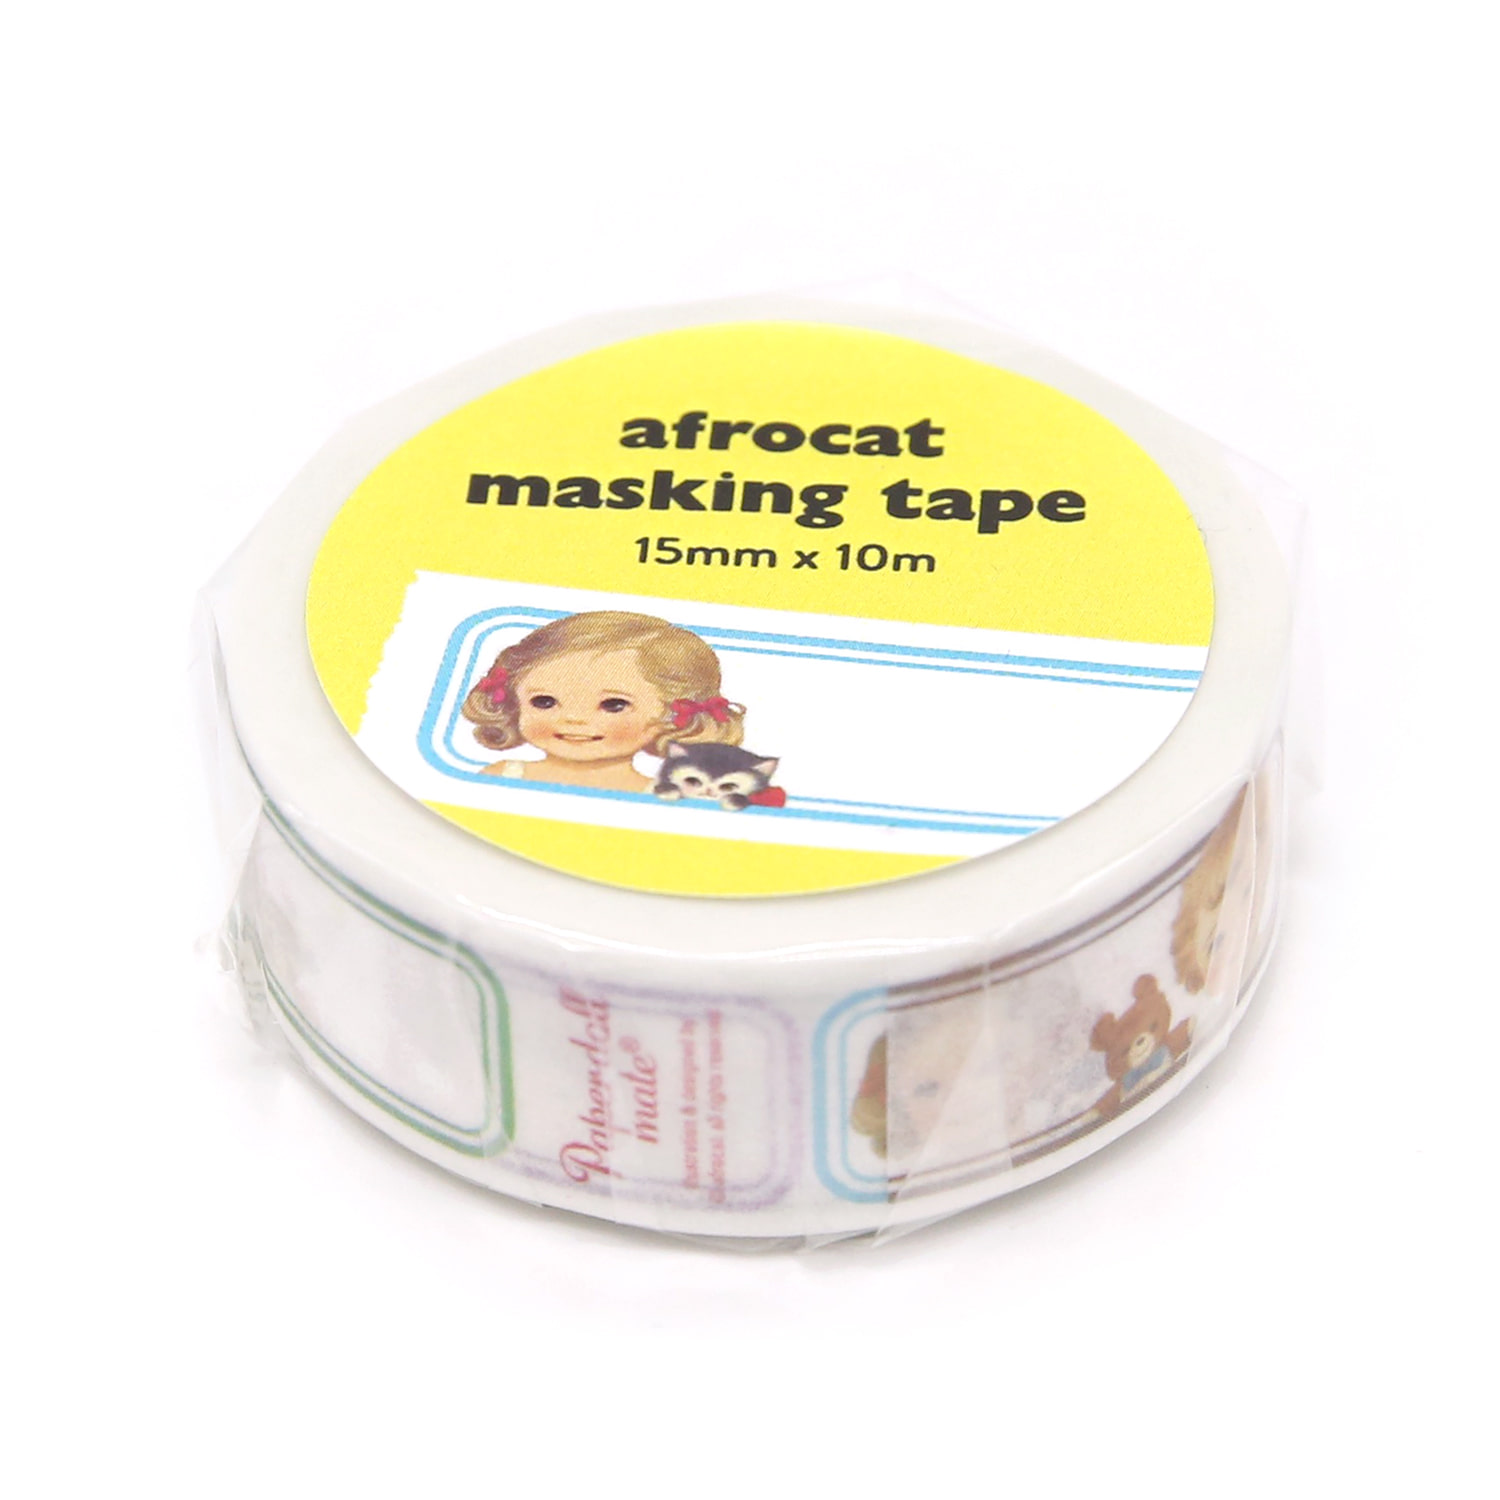 [afrocat masking tape] 7. Paper doll mate_name label 15mm